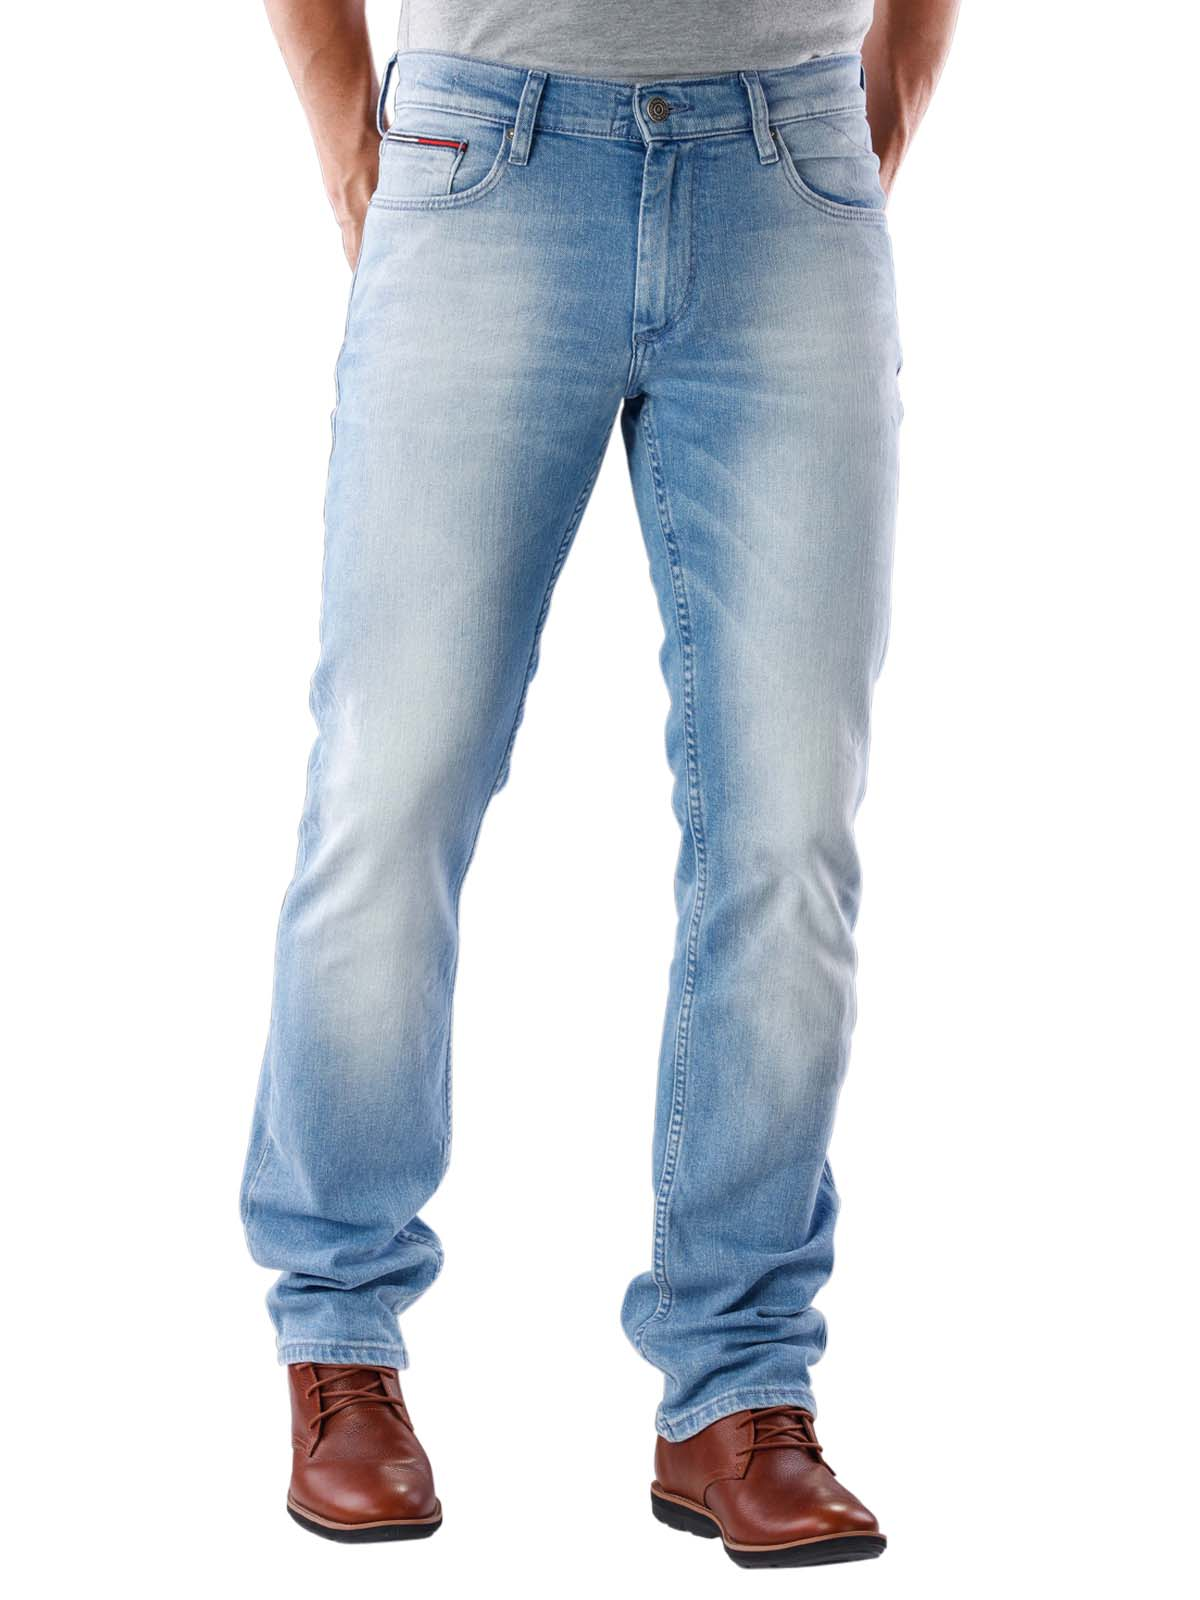 aa6609abb Fast Delivery | Tommy Jeans Ryan Straight Original ... - McJeans.ch